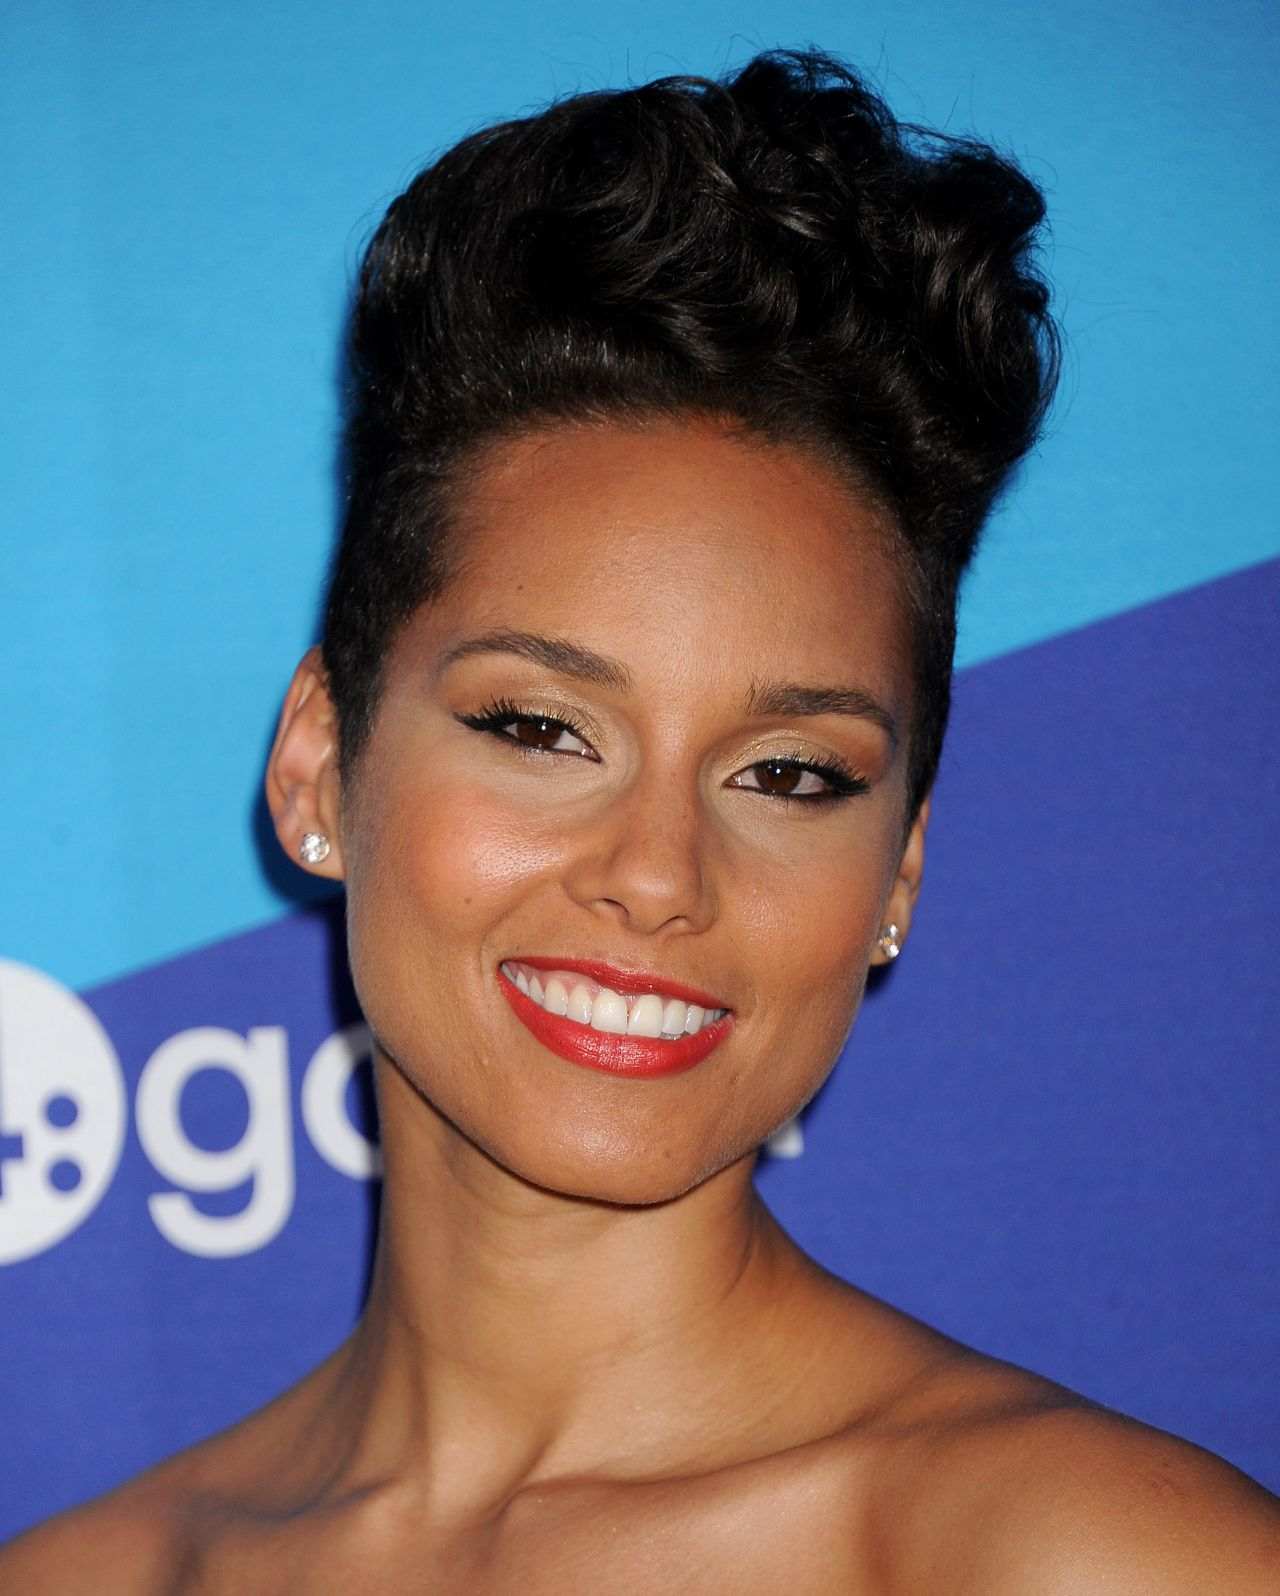 Alicia Keys - Variety's unite4:humanity Gala – February 2014